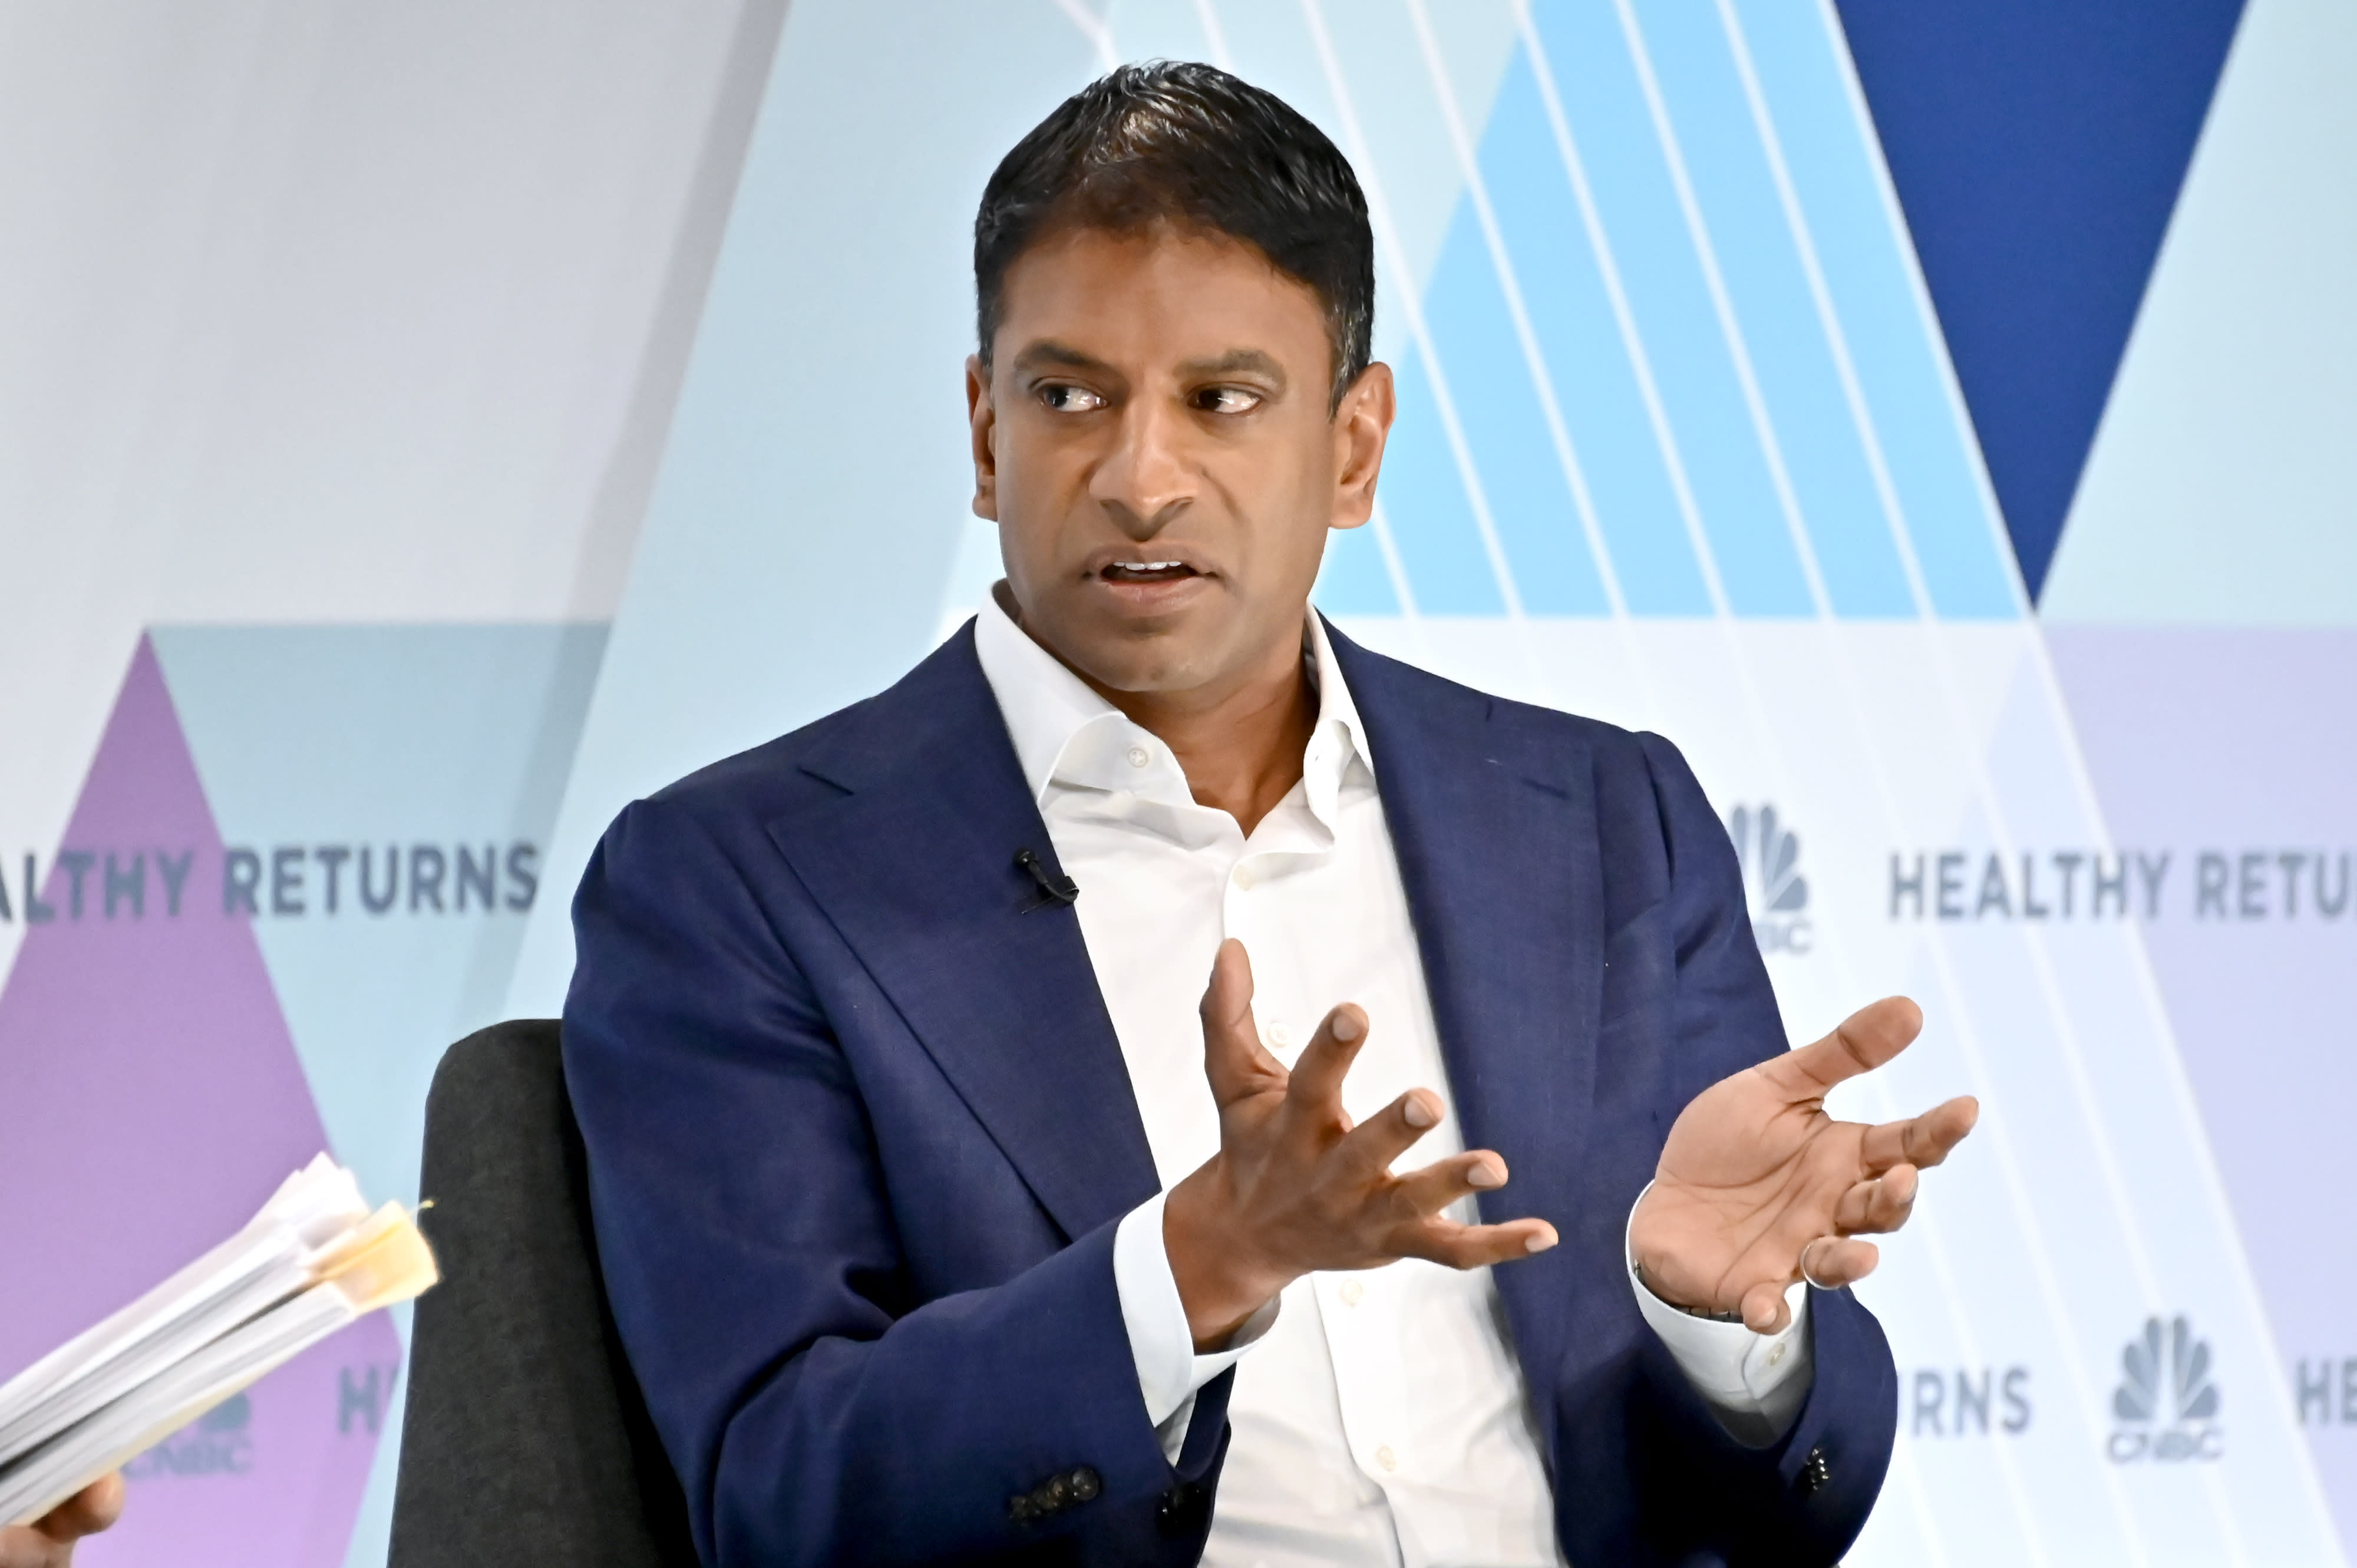 Novartis CEO says Covid-related doctor visit delays likely impacting cancer diagnosis rates